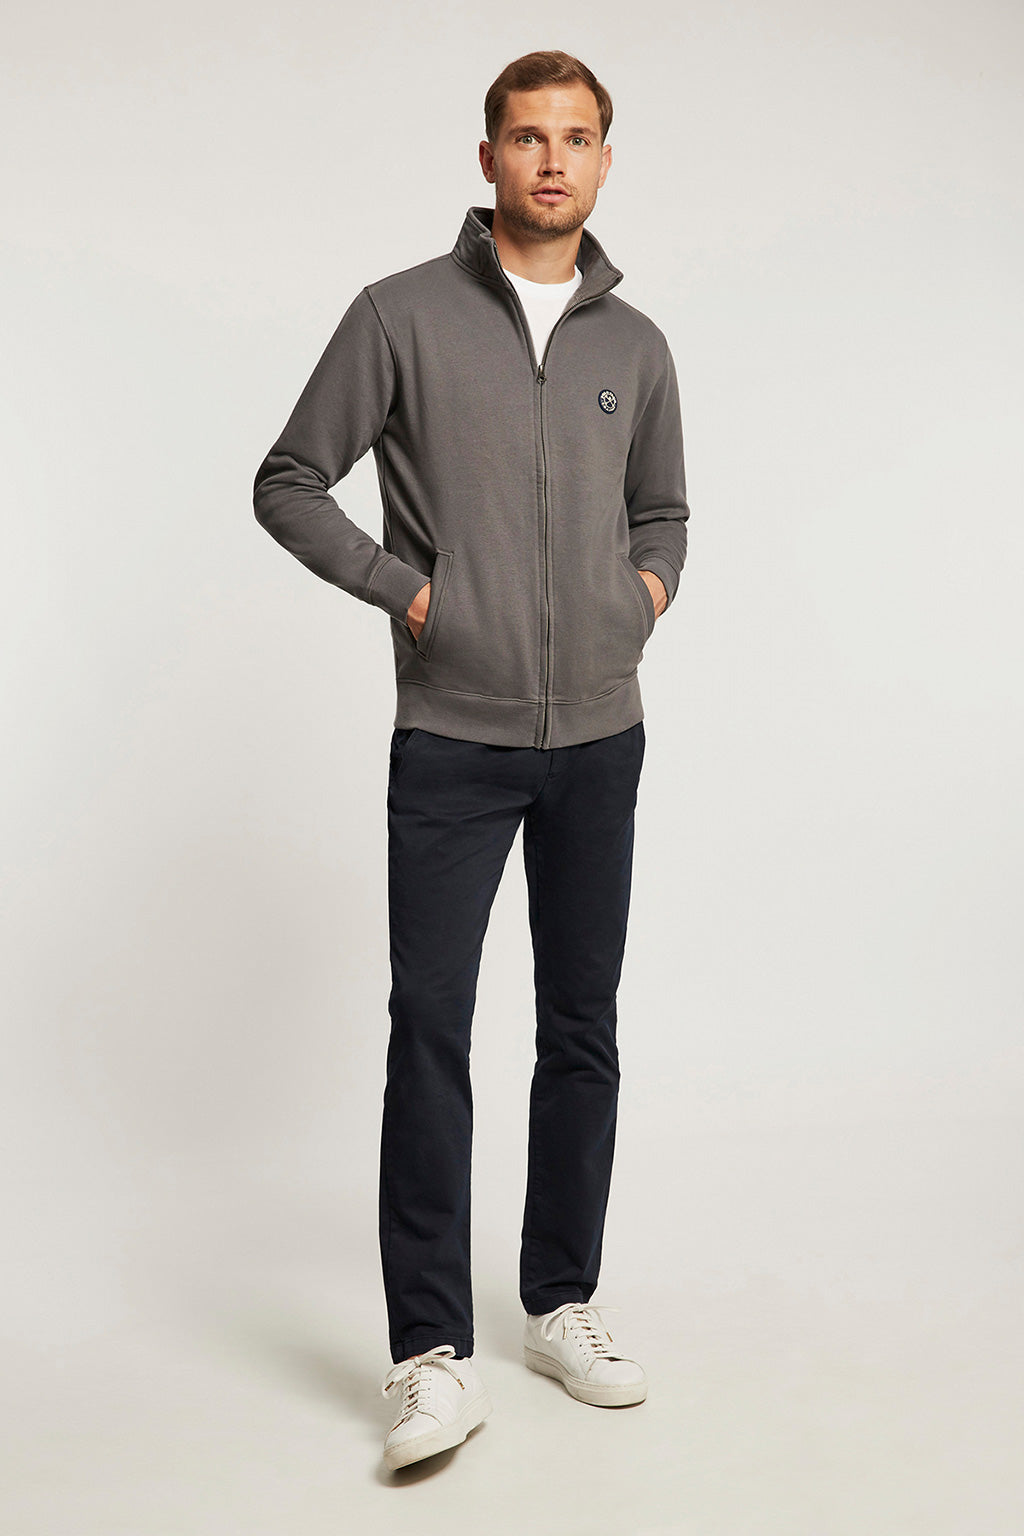 Carbon grey vigore zipped sweatshirt